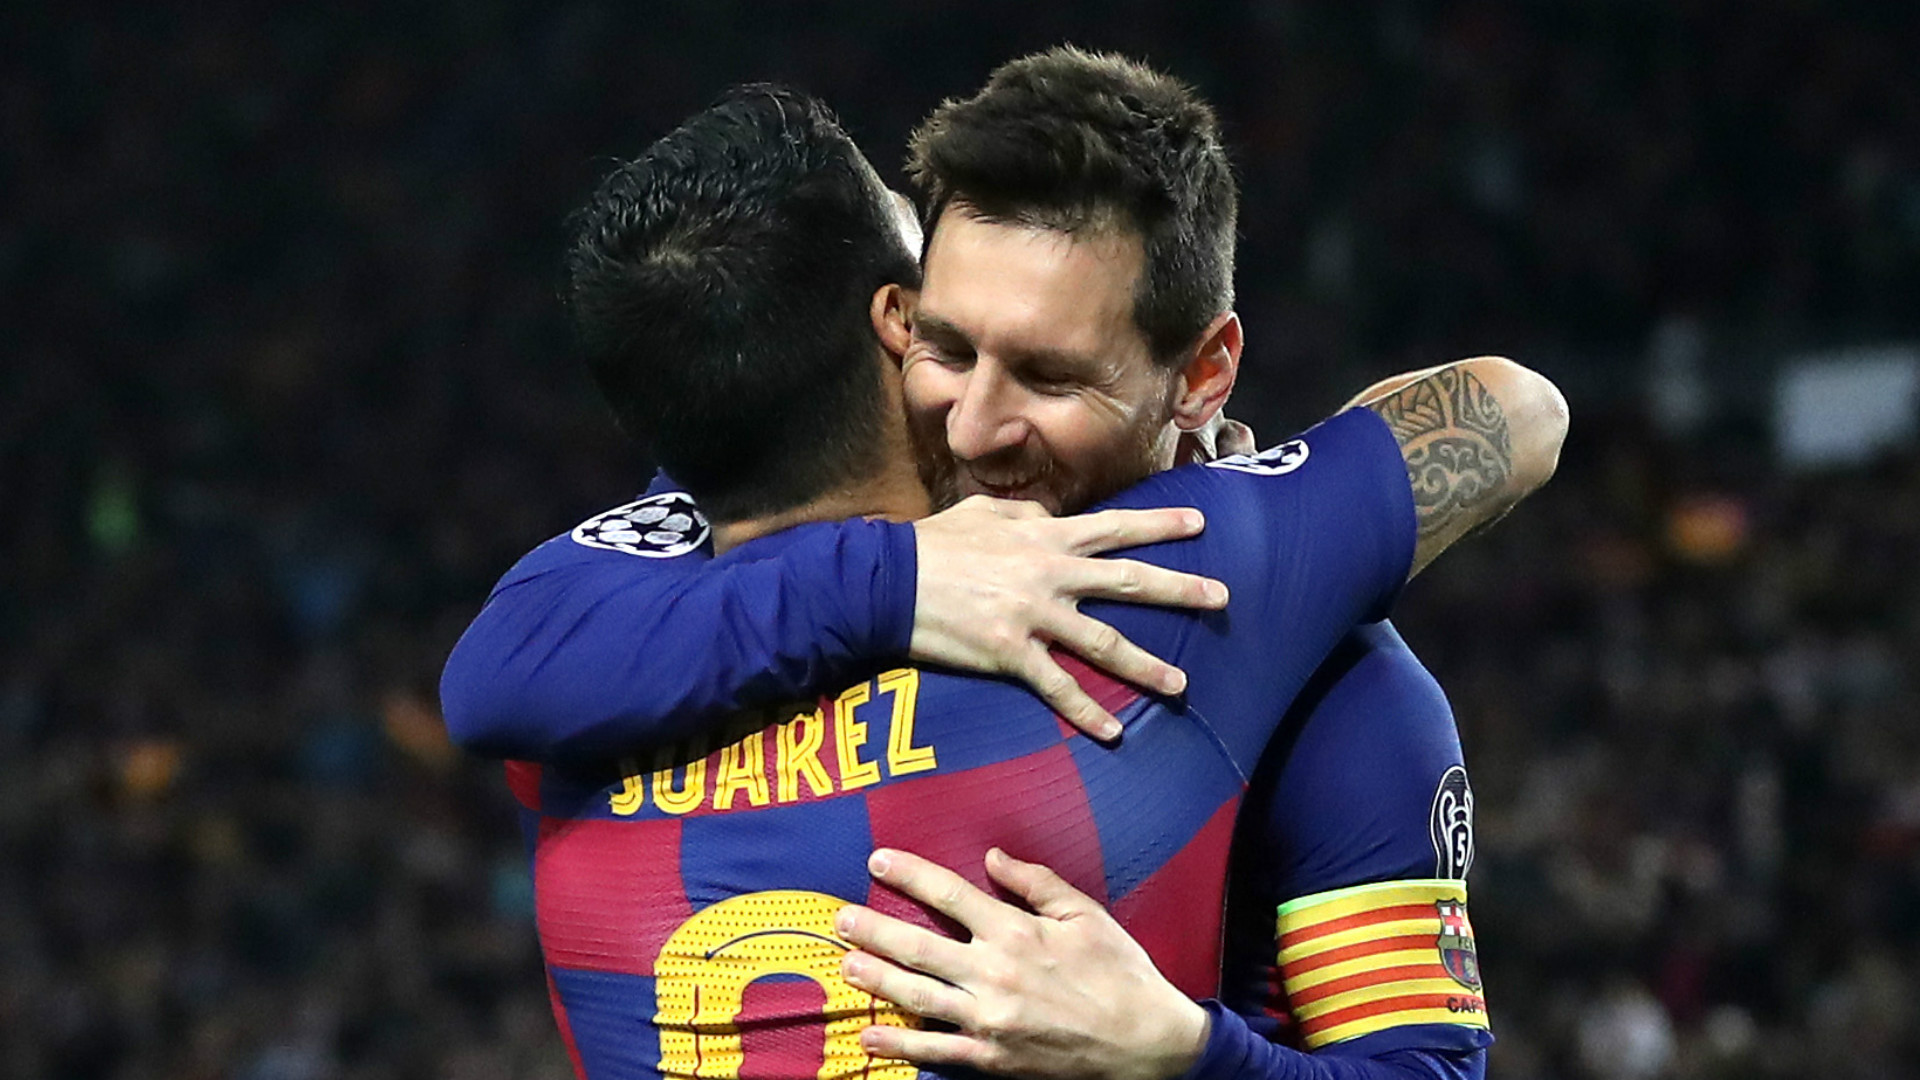 You Didn T Deserve To Be Thrown Out Messi Slams Barcelona Over Suarez Exit In Explosive Emotional Instagram Post Goal Com